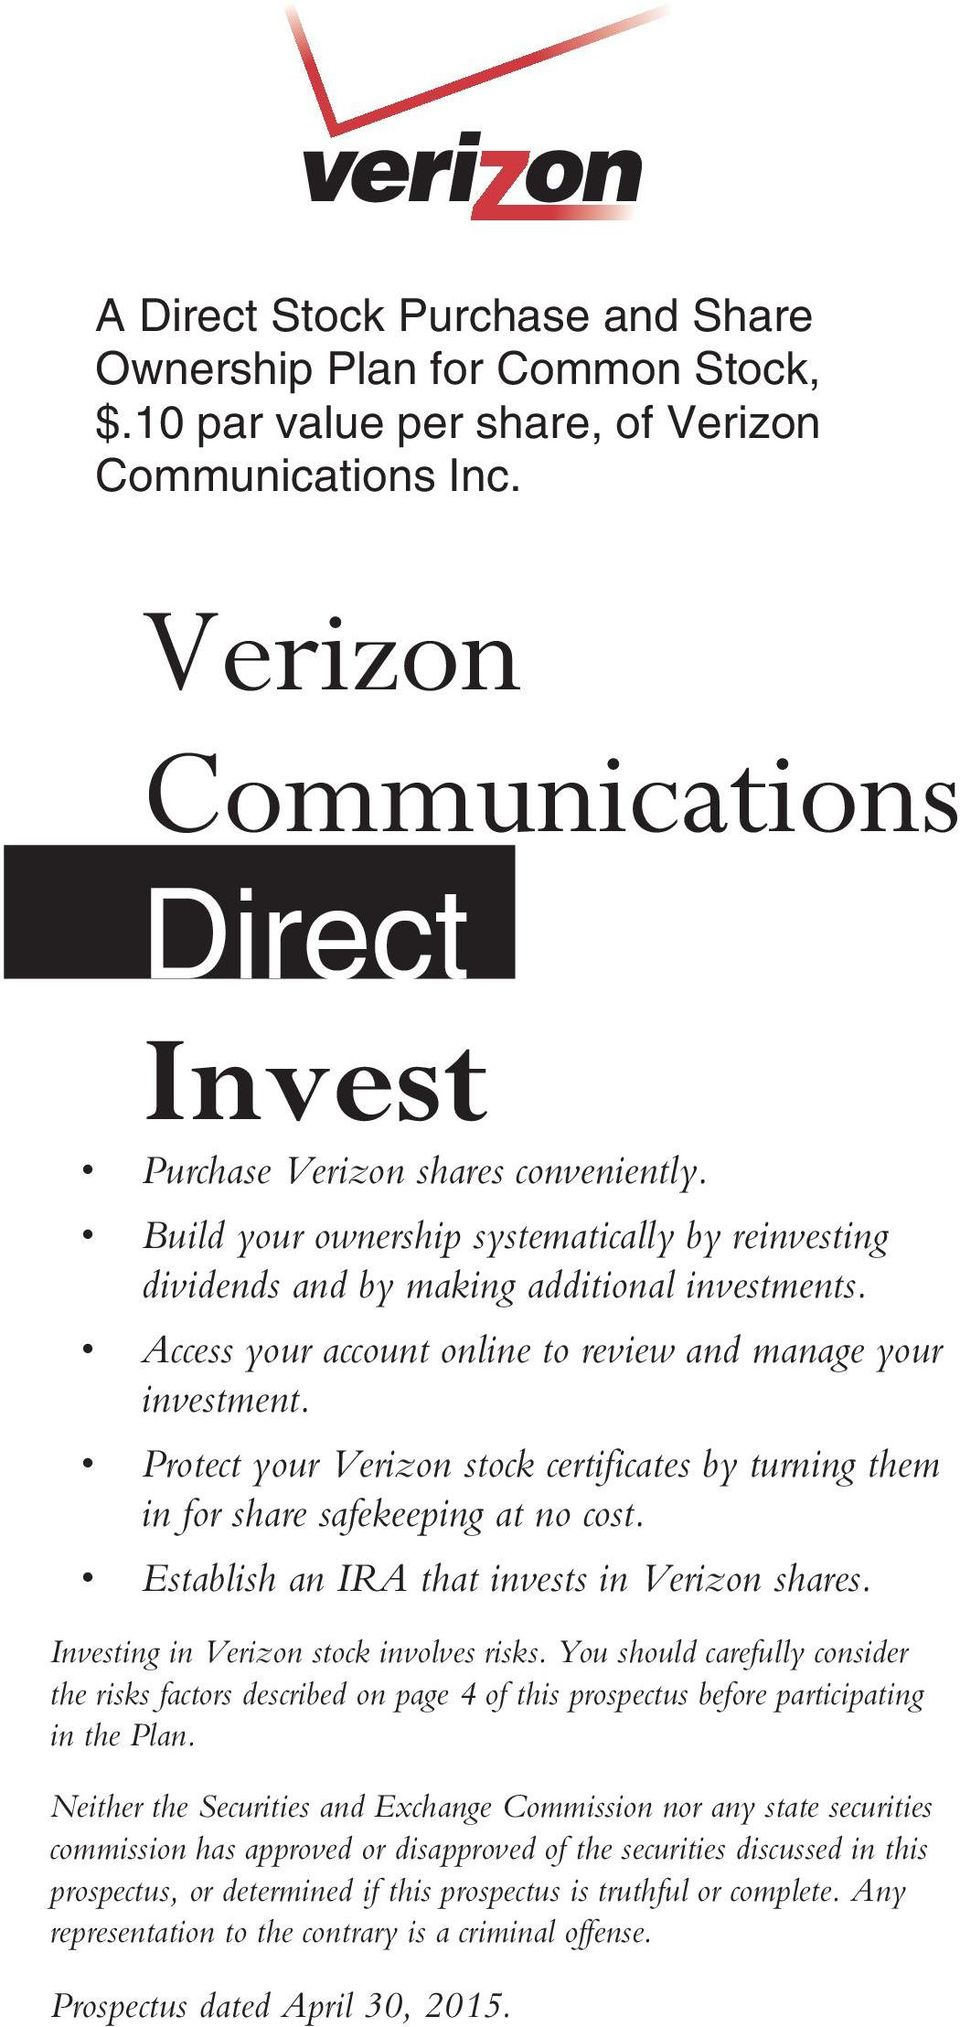 Protect your Verizon stock certificates by turning them in for share safekeeping at no cost. Establish an IRA that invests in Verizon shares. Investing in Verizon stock involves risks.